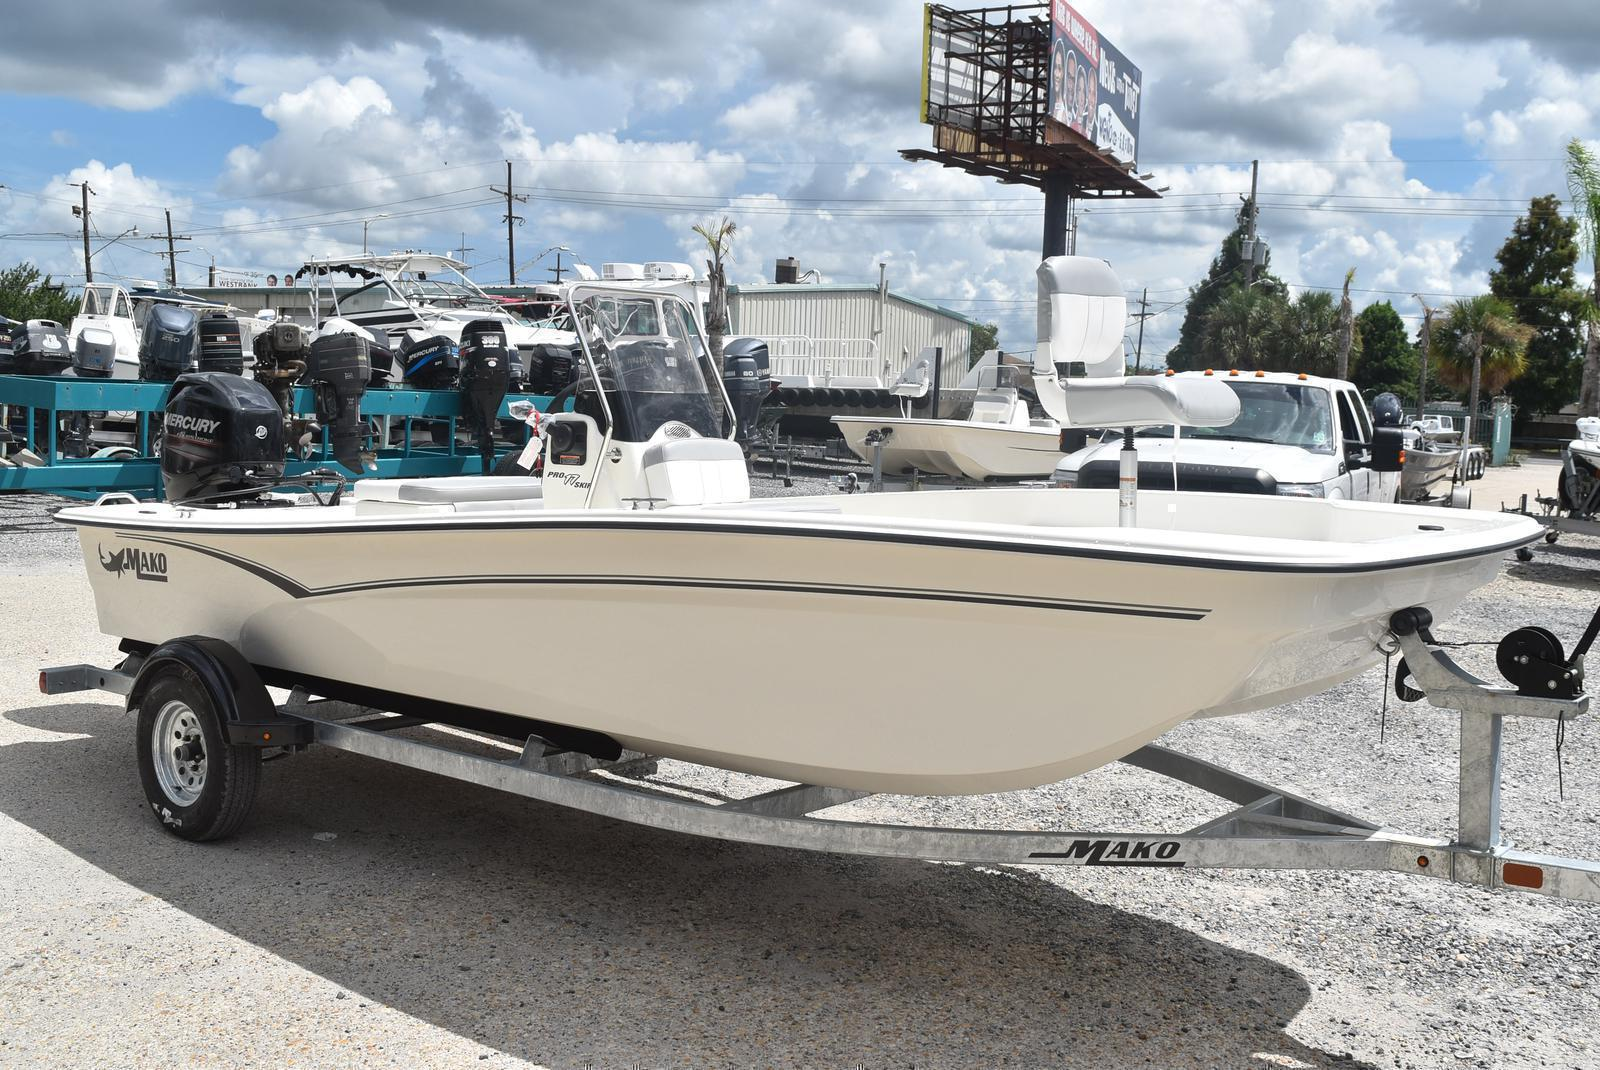 2020 Mako boat for sale, model of the boat is Pro Skiff 17, 75 ELPT & Image # 696 of 702